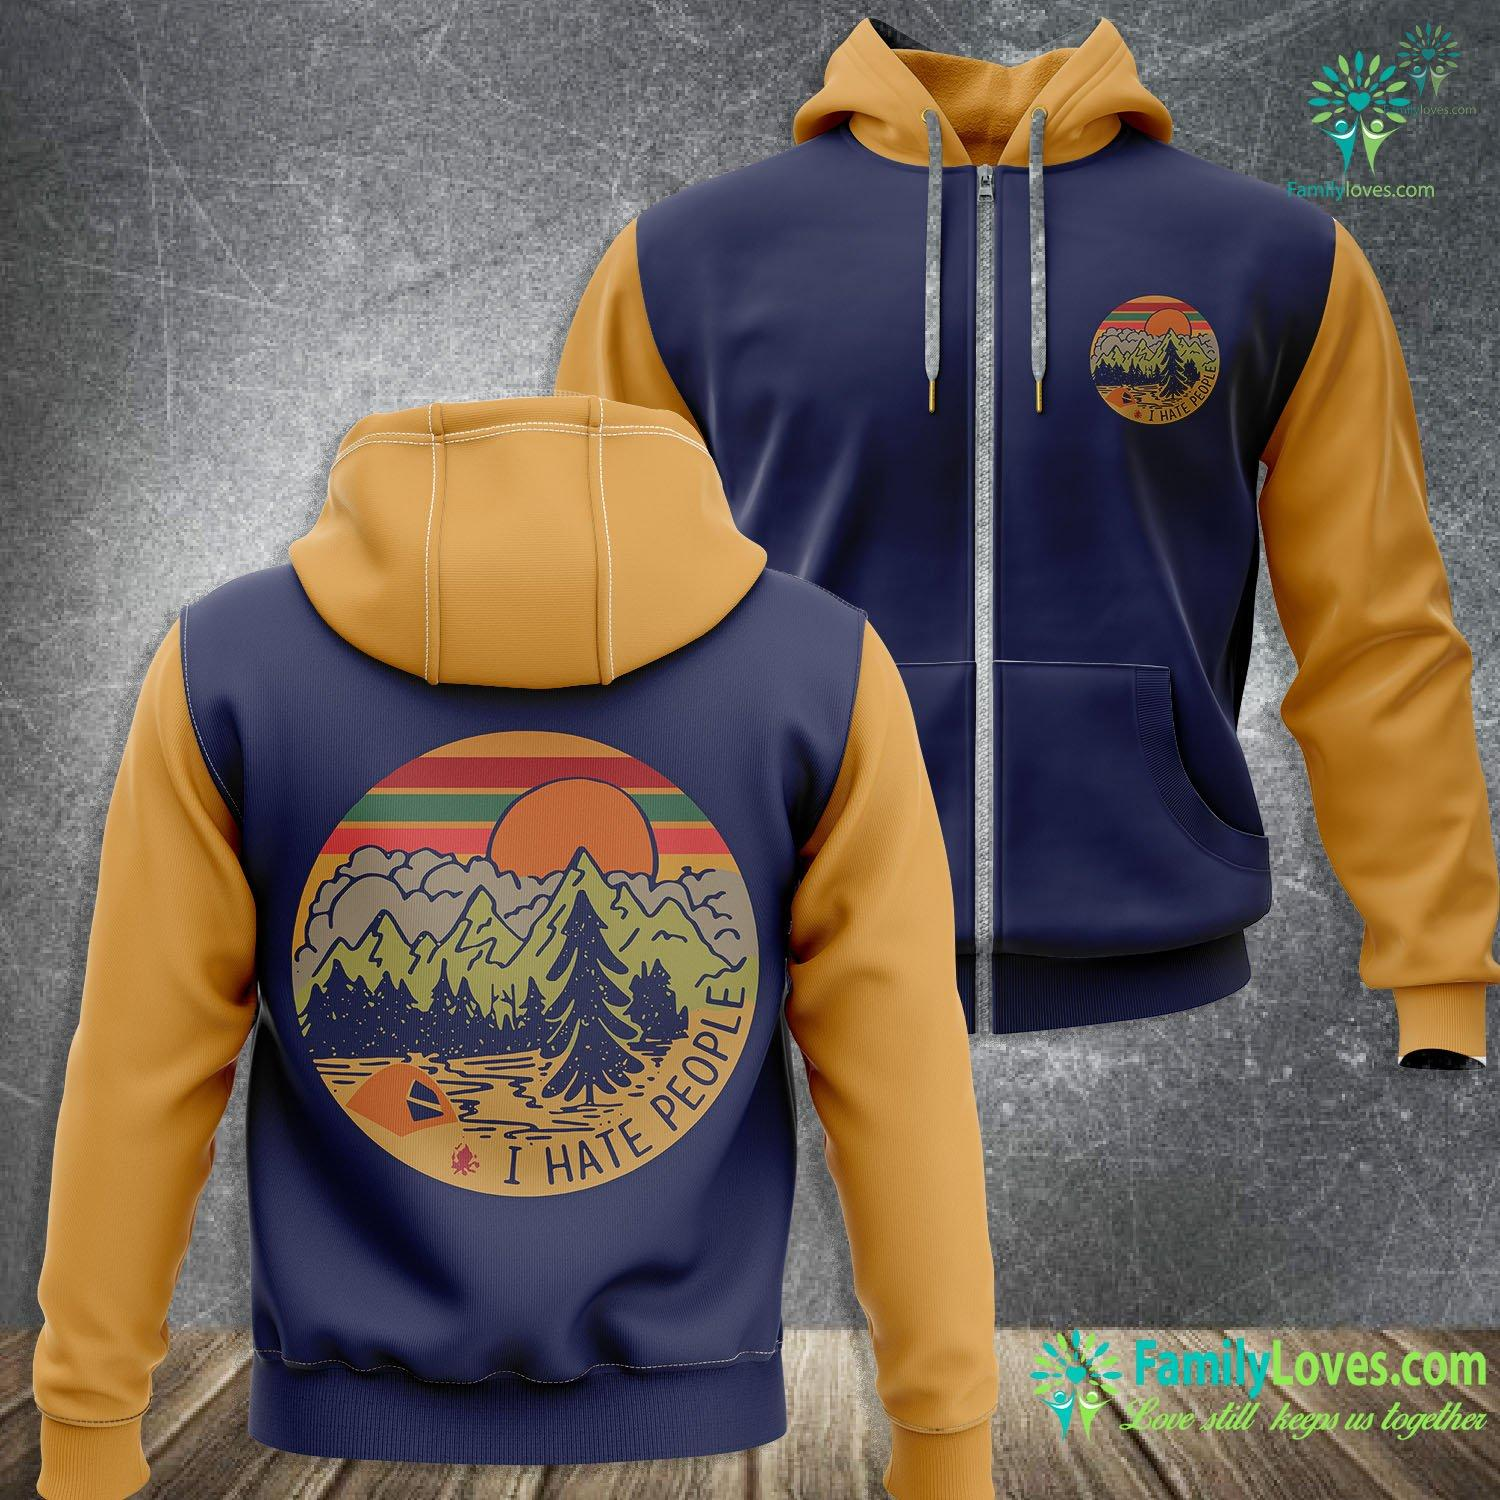 I Hate People Camping 3D All Over Printed Zip Hoodie Familyloves.com